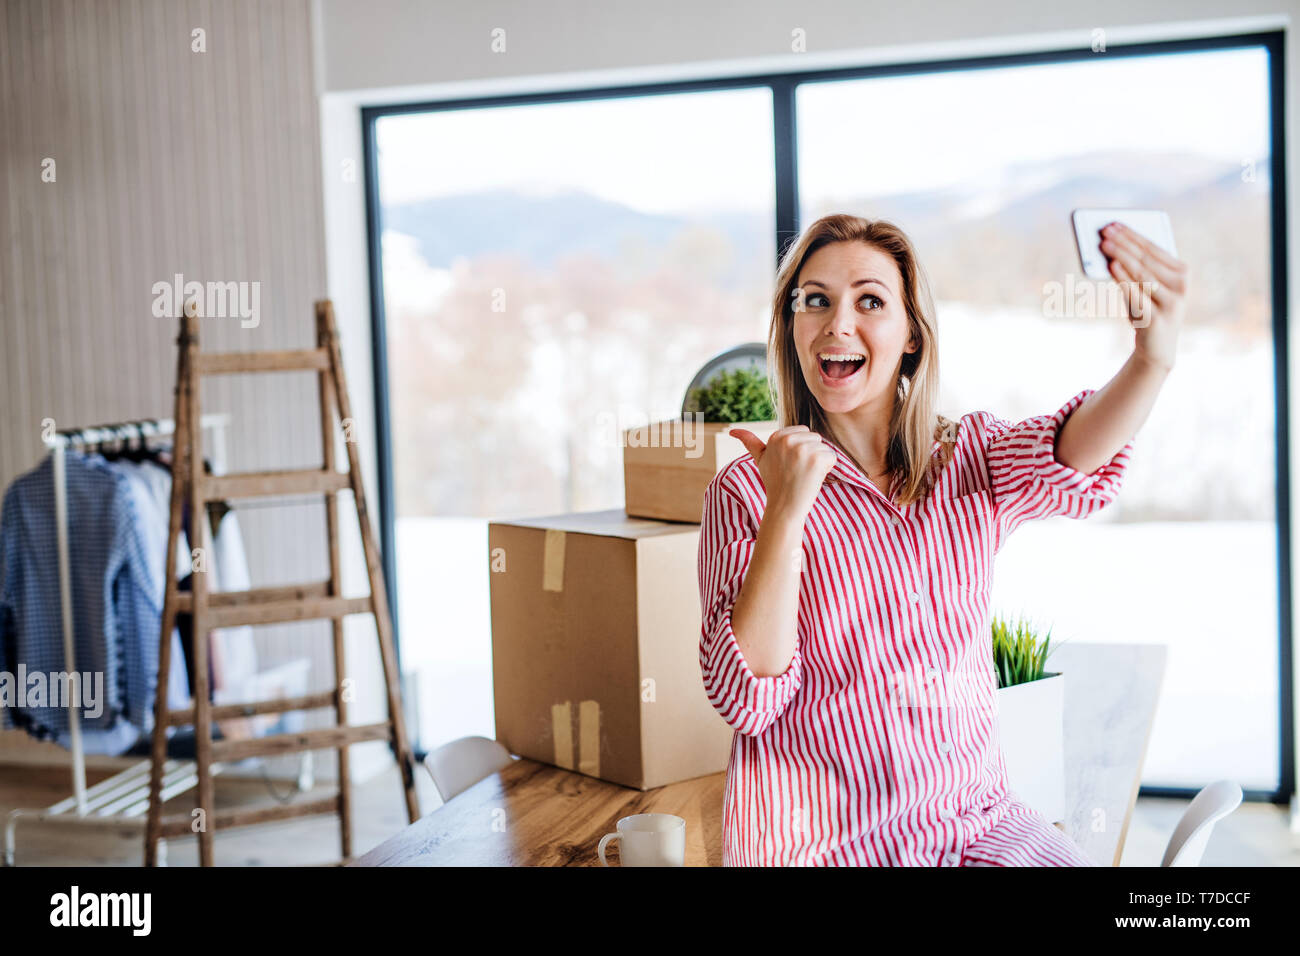 A happy young woman with smartphone moving in new home, grimacing when taking selfie. - Stock Image